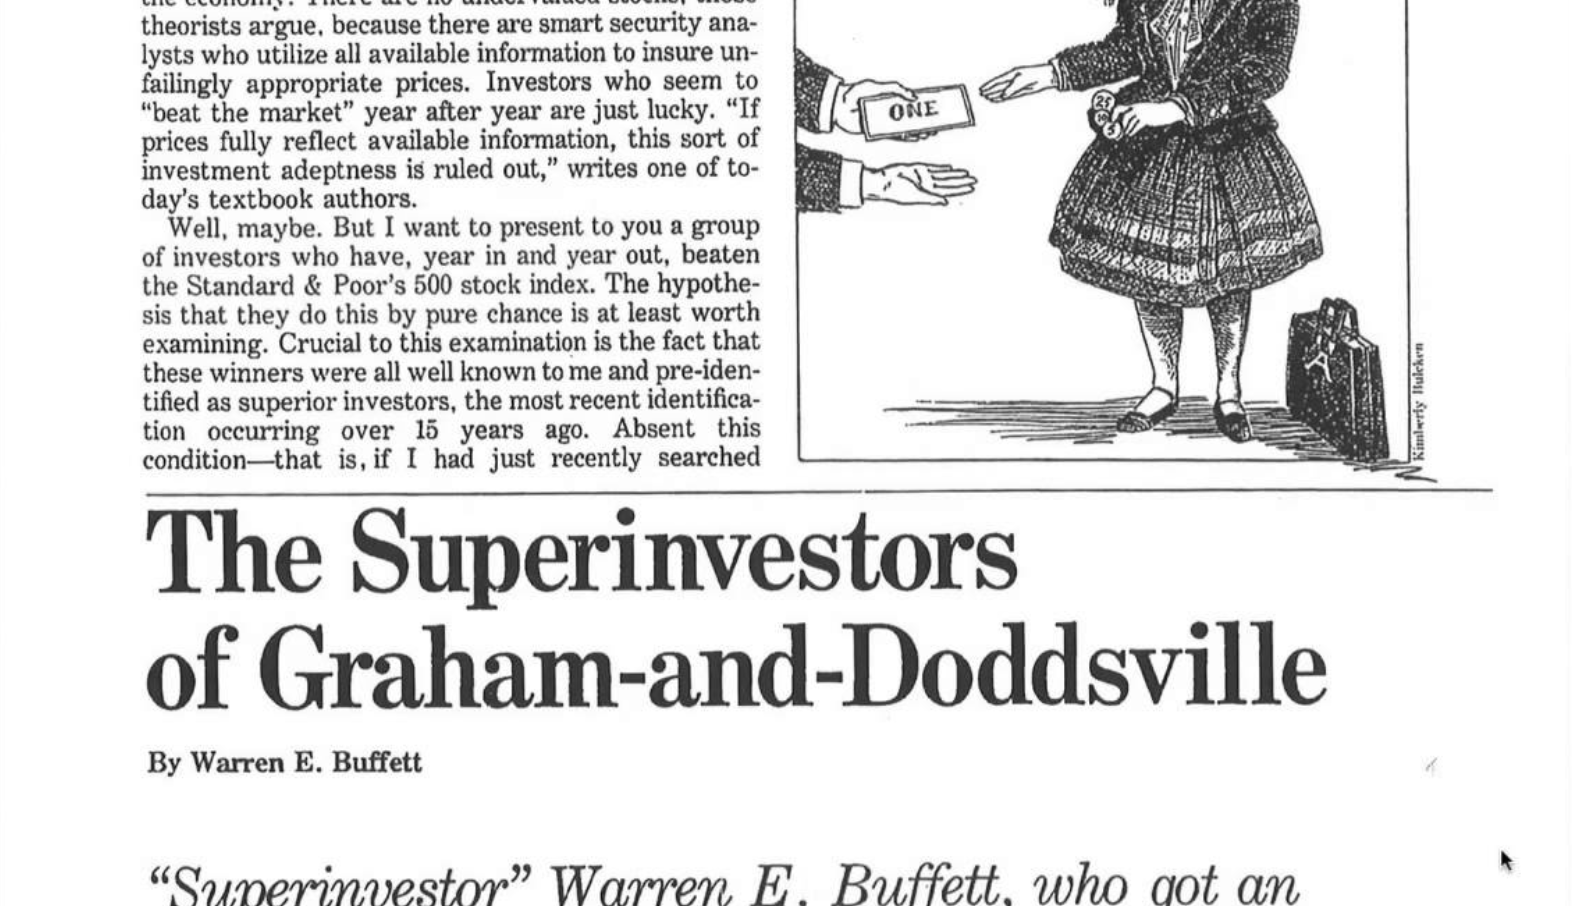 Os superinvestidores de graham-and-doddsville